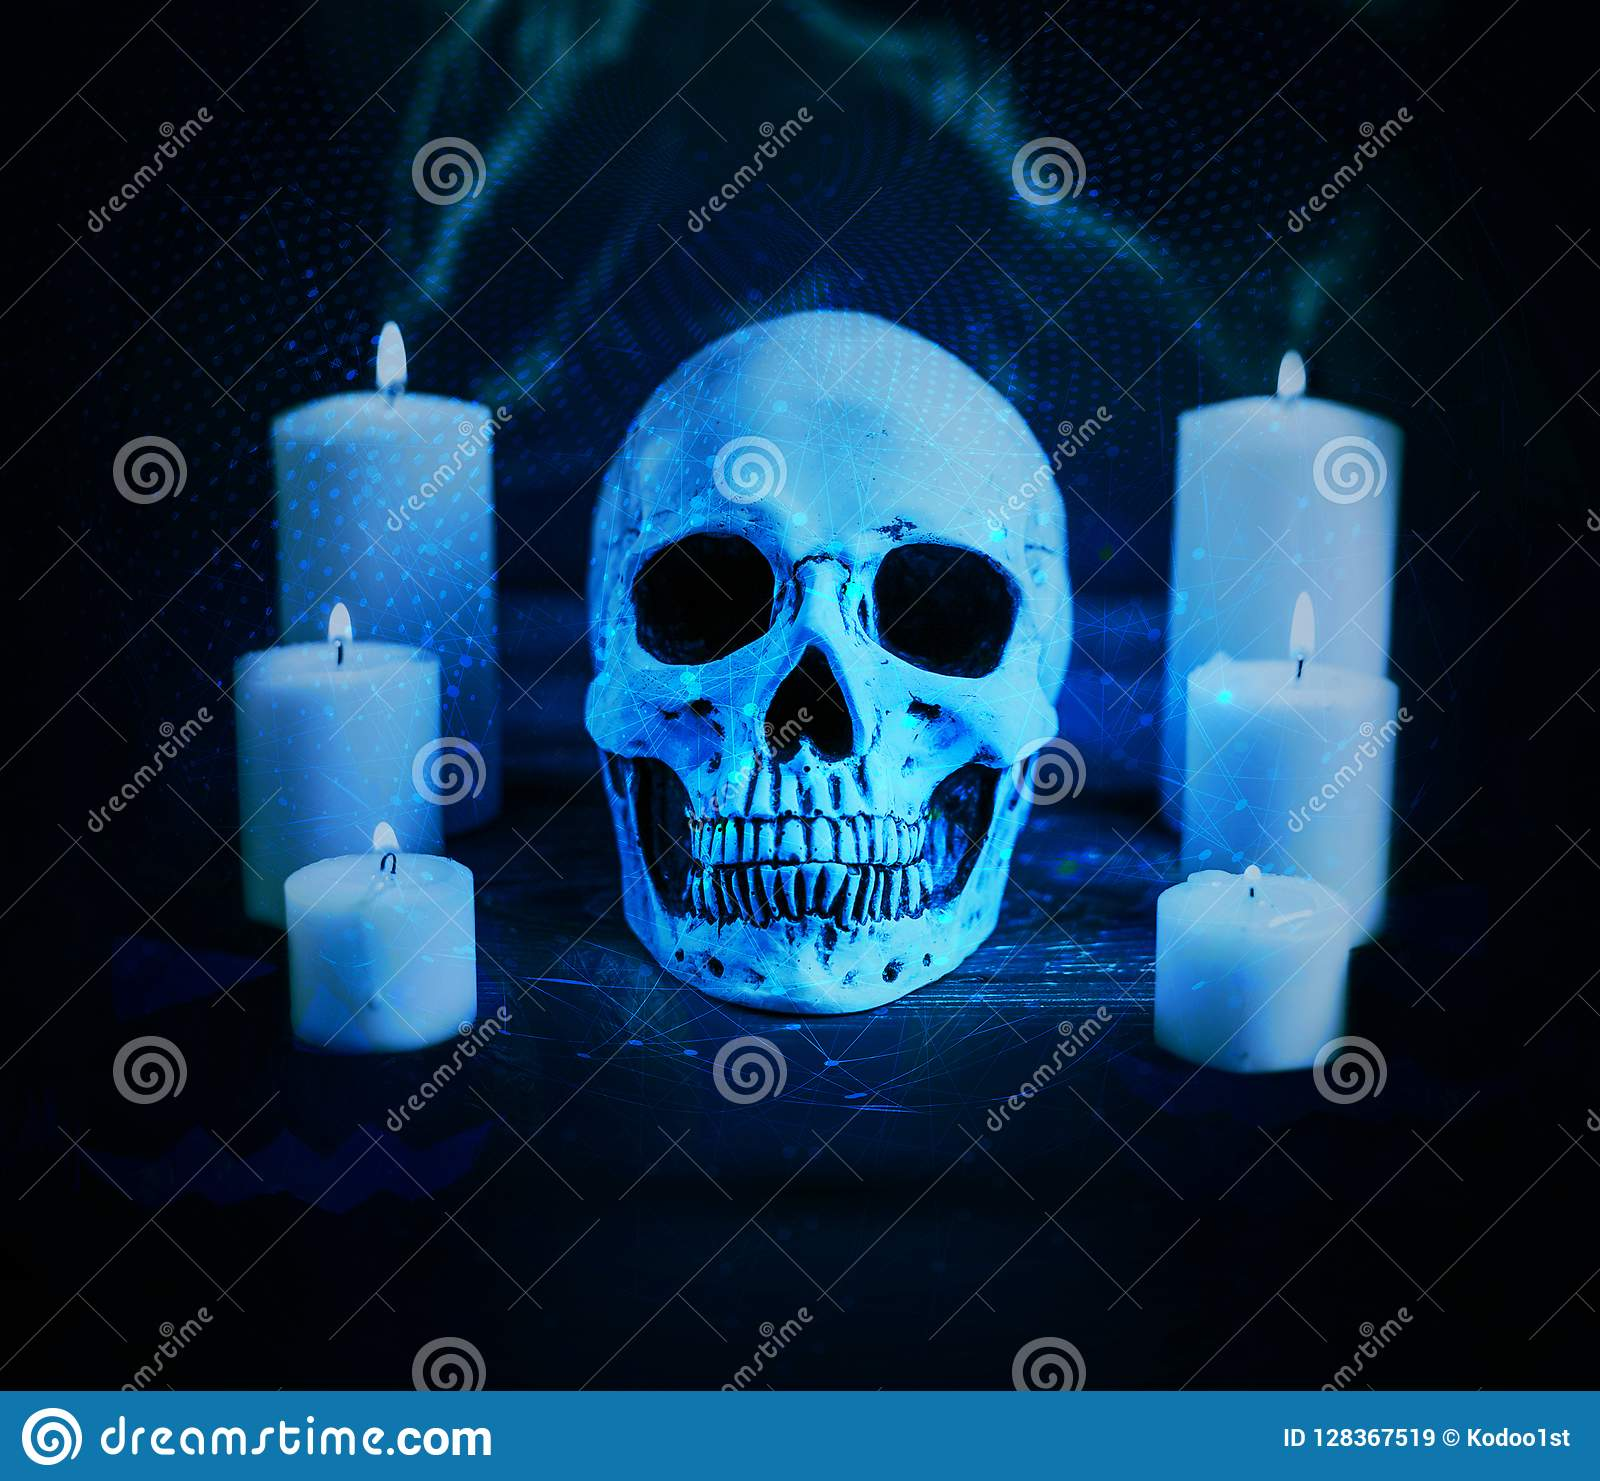 Abstract Artistic Cursed Skull Surrounded by Candles on a Cyan network Background